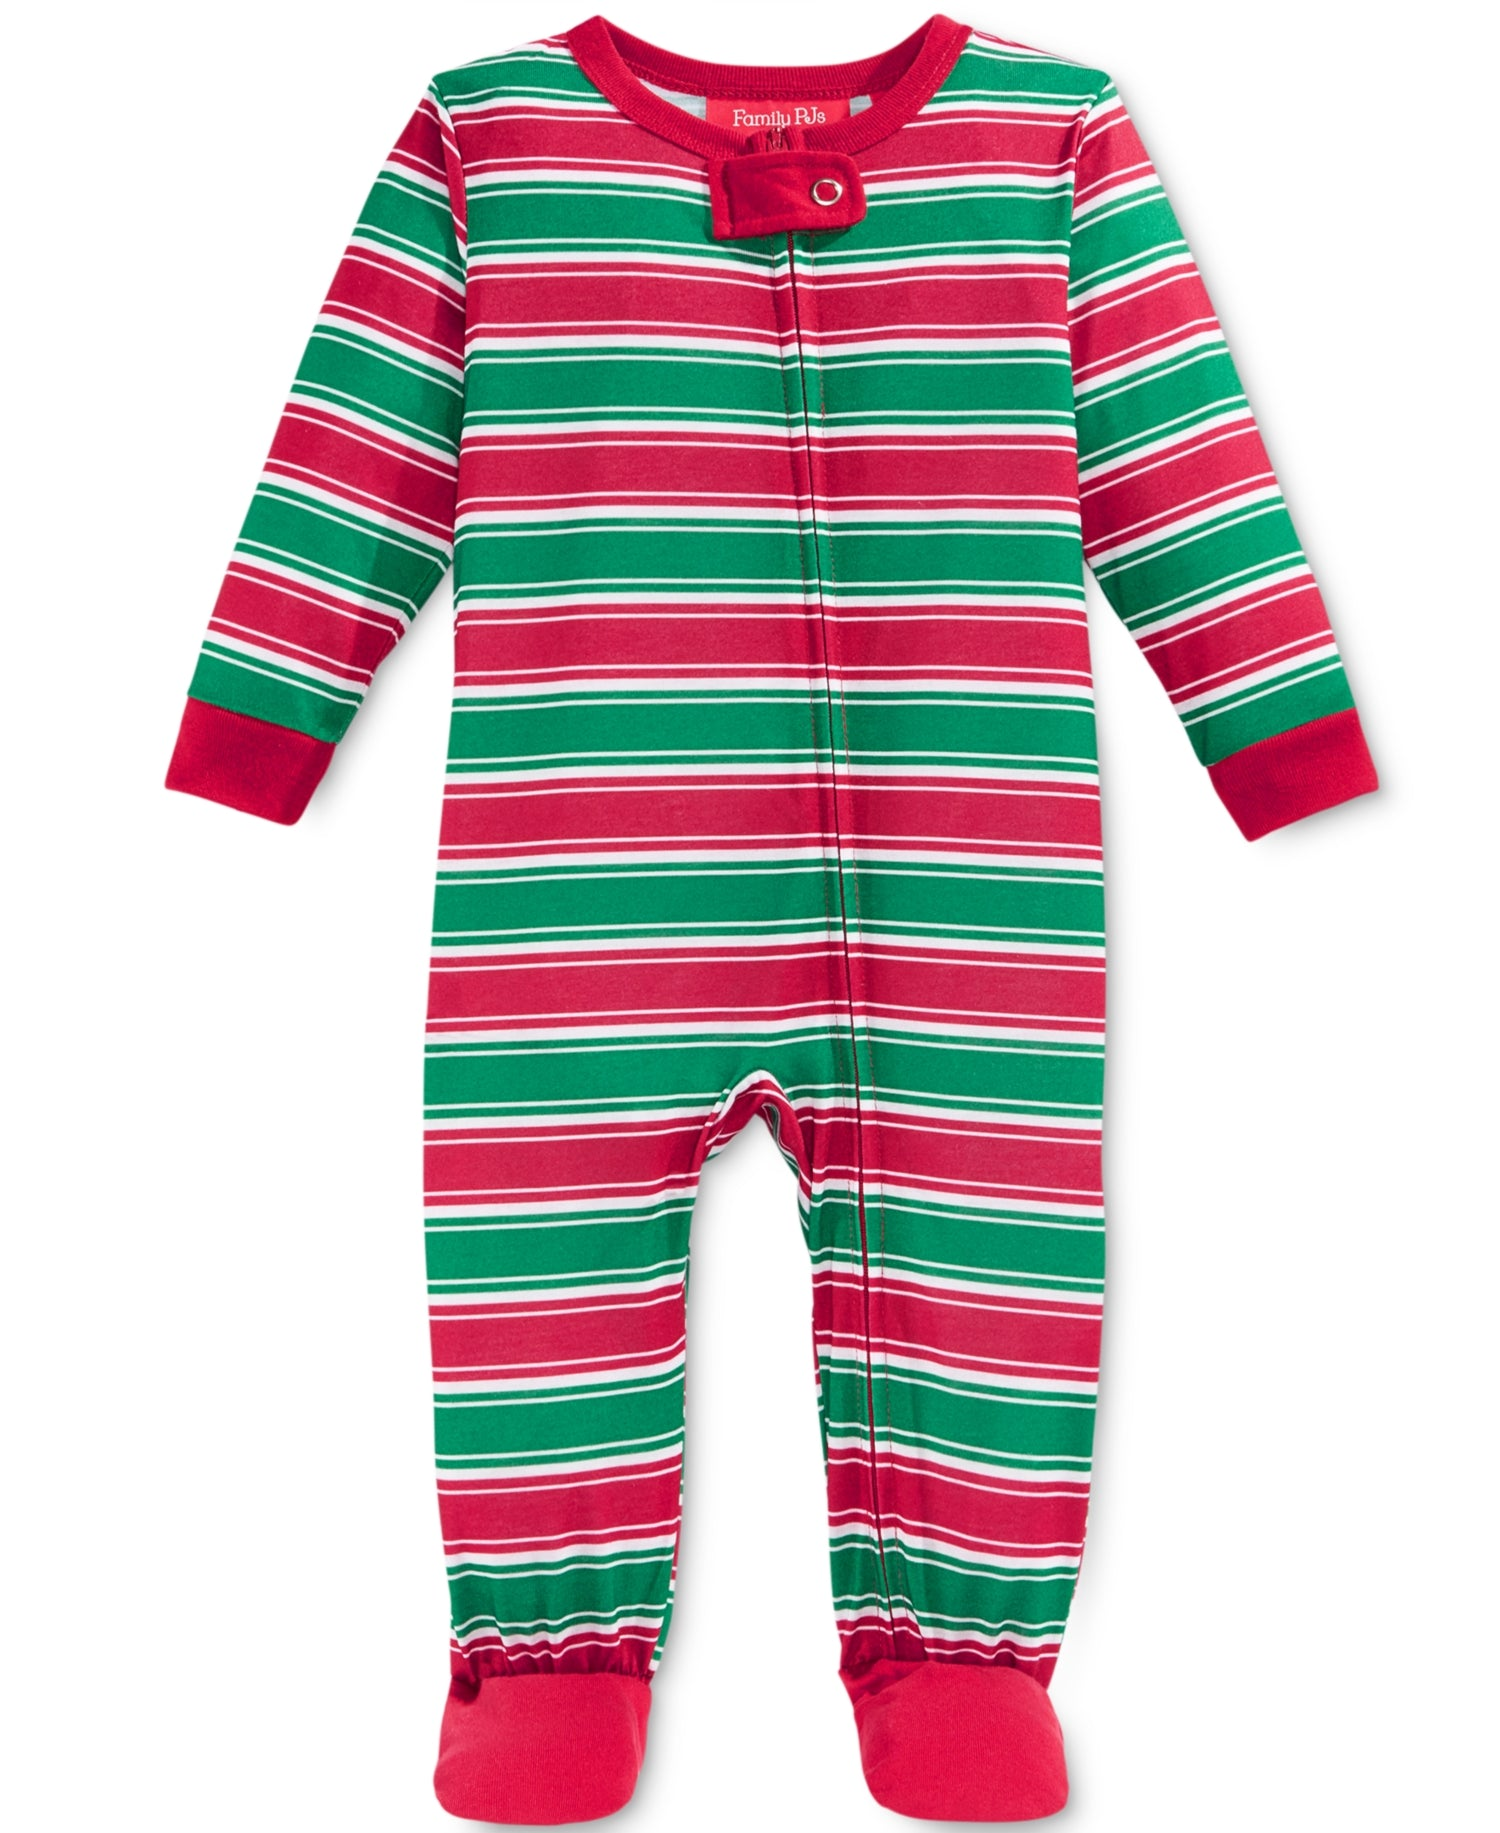 7737fbaabd99 Family Pajamas Baby Boys  or Baby Girls  Holiday Stripe Knit Footed ...